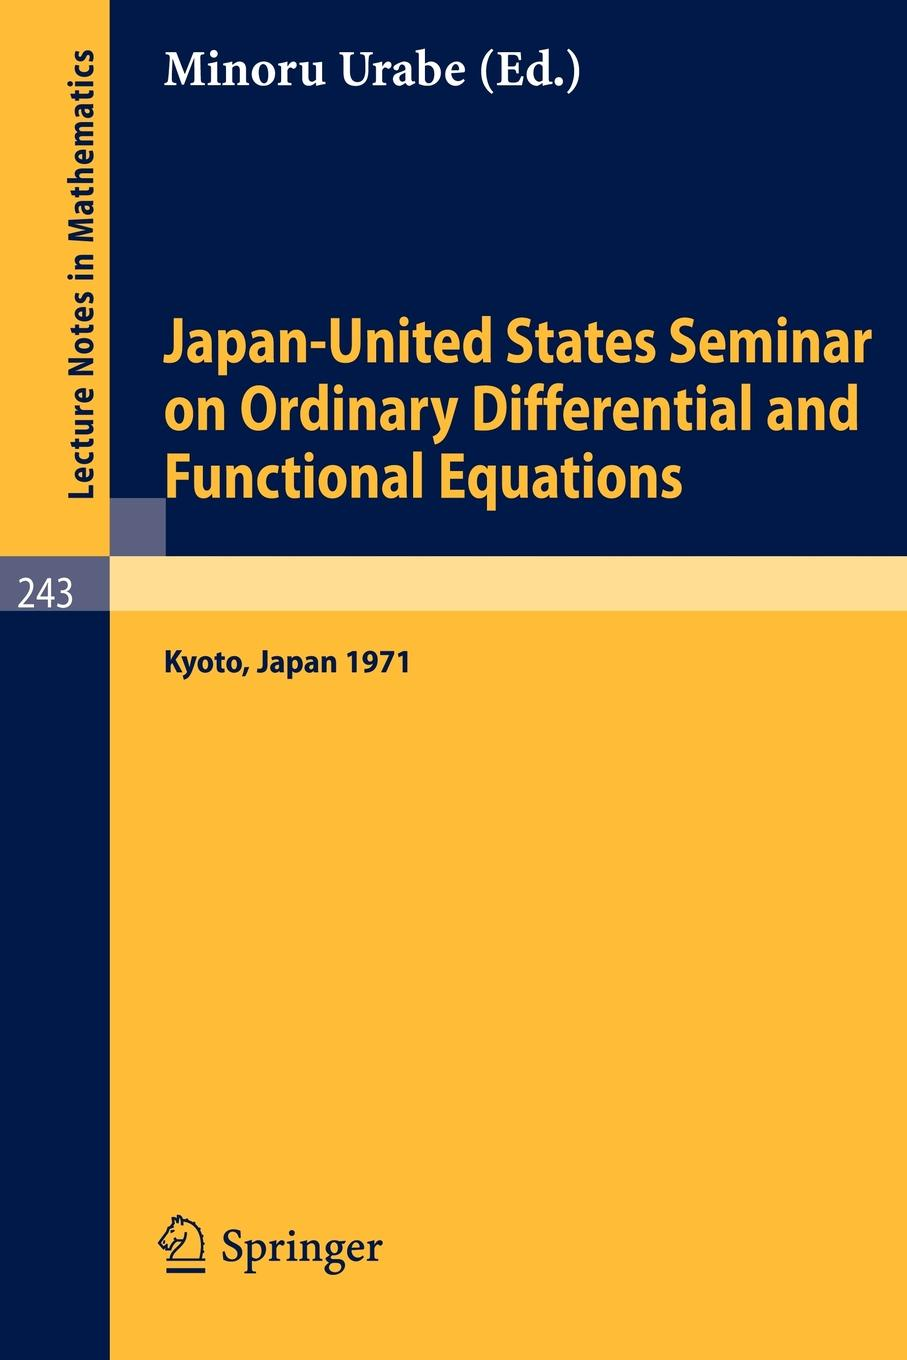 Japan-United States Seminar on Ordinary Differential and Functional Equations. Held in Kyoto/Japan, September 6-11. 1971